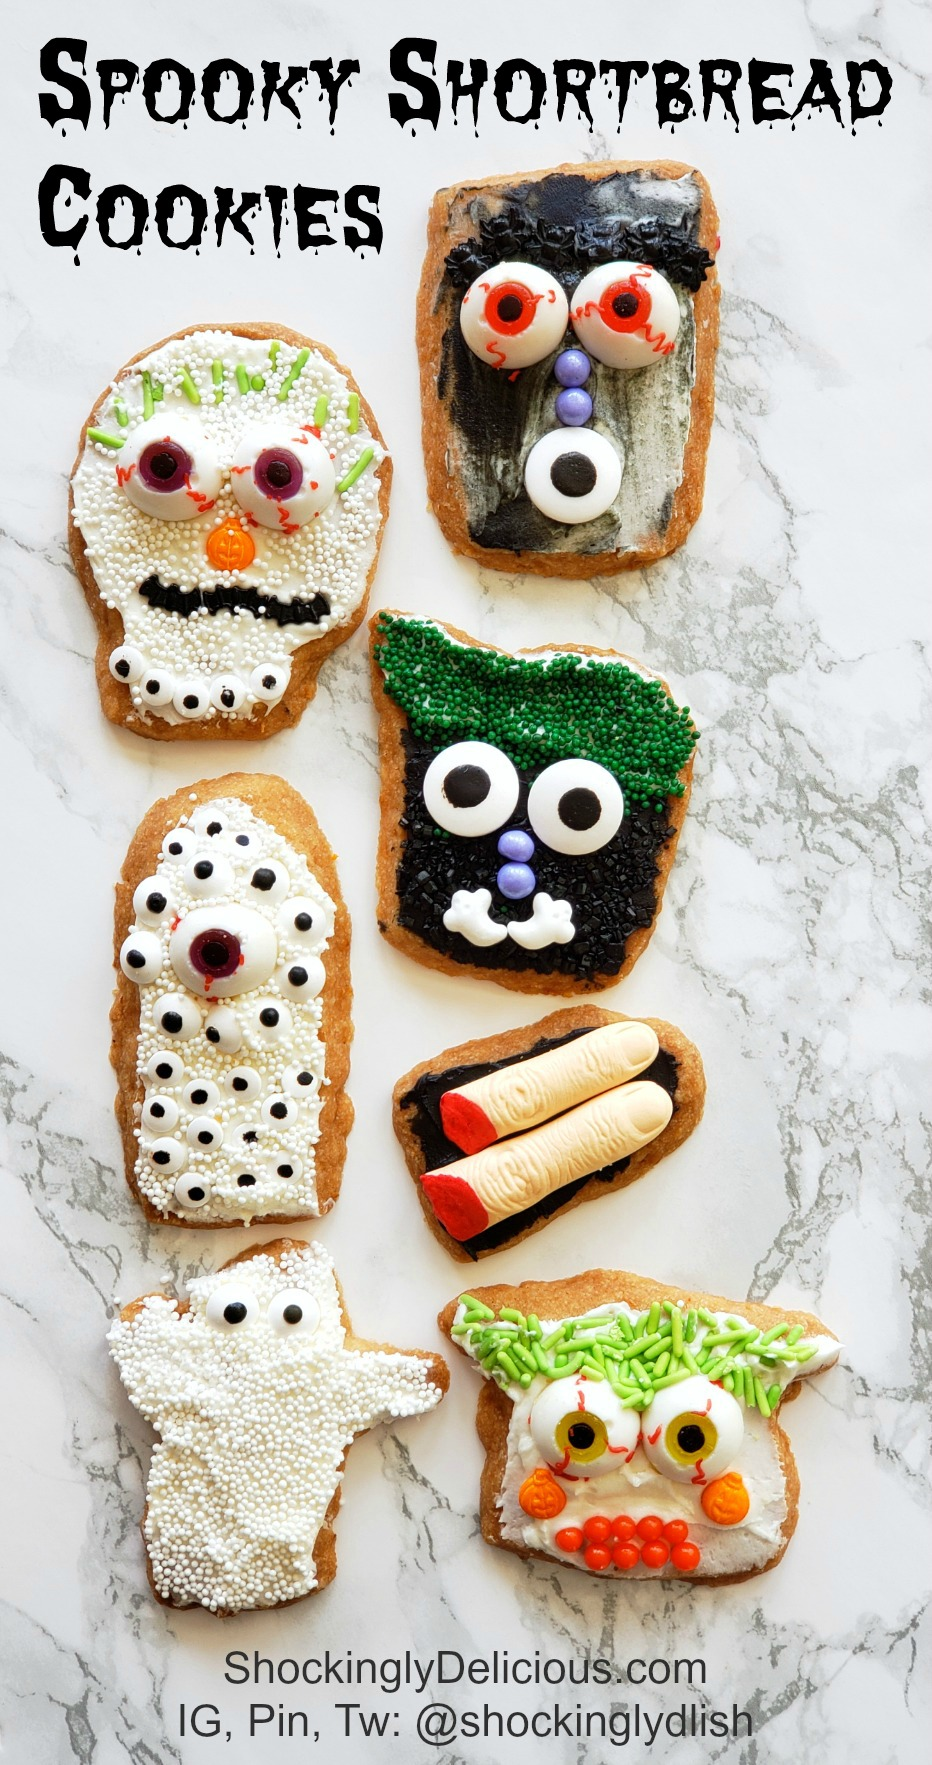 Spooky Shortbread Cookies on ShockinglyDelicious.com